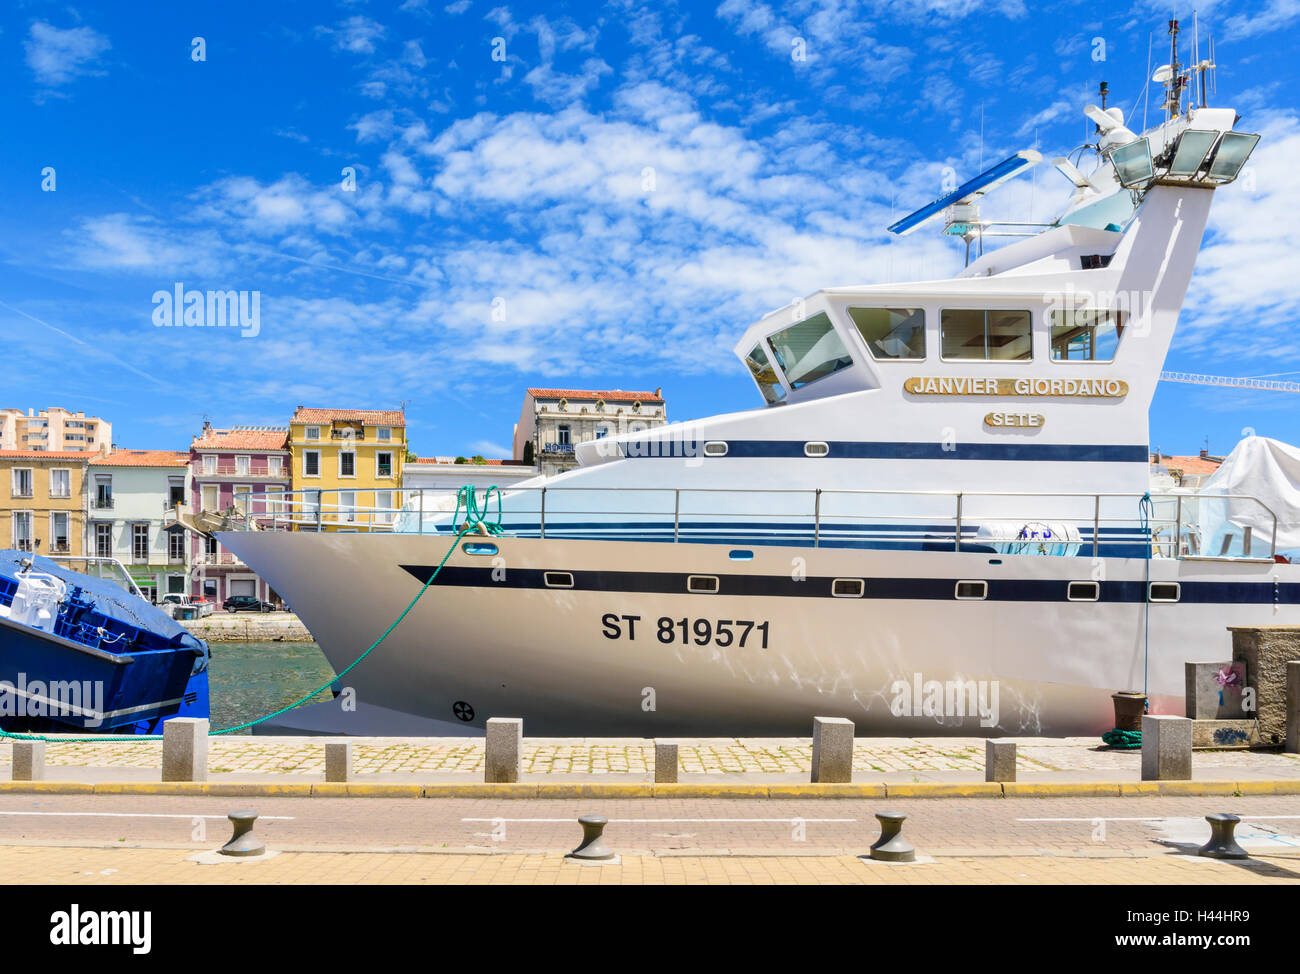 Large commercial fishing boat moored along the Canal Royal in Sète, Hérault, France - Stock Image